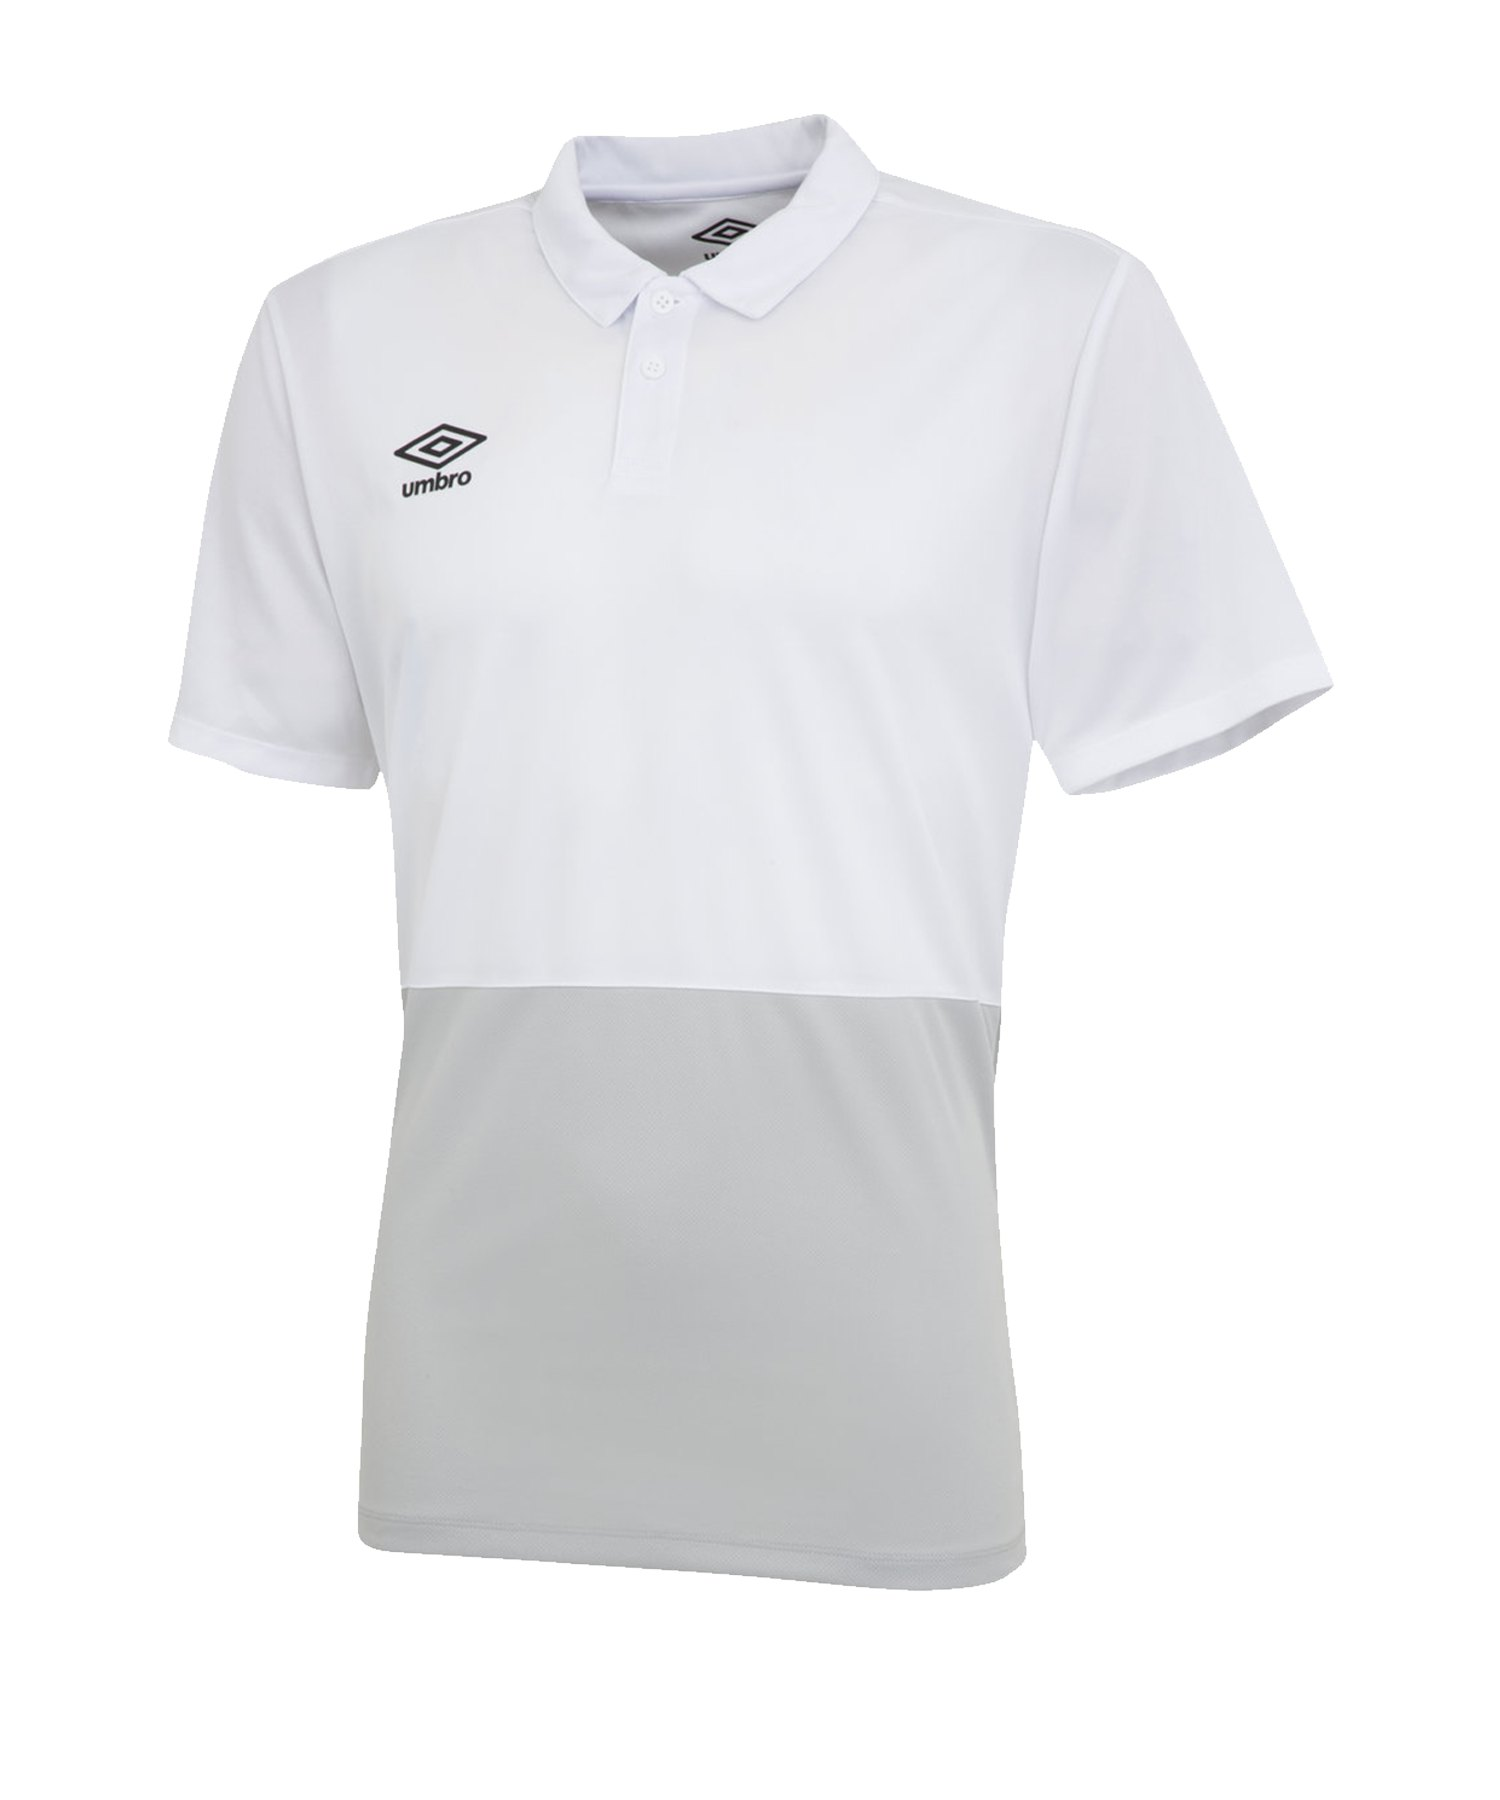 Umbro Training Poly Polo Shirt Weiss FCUE - Weiss